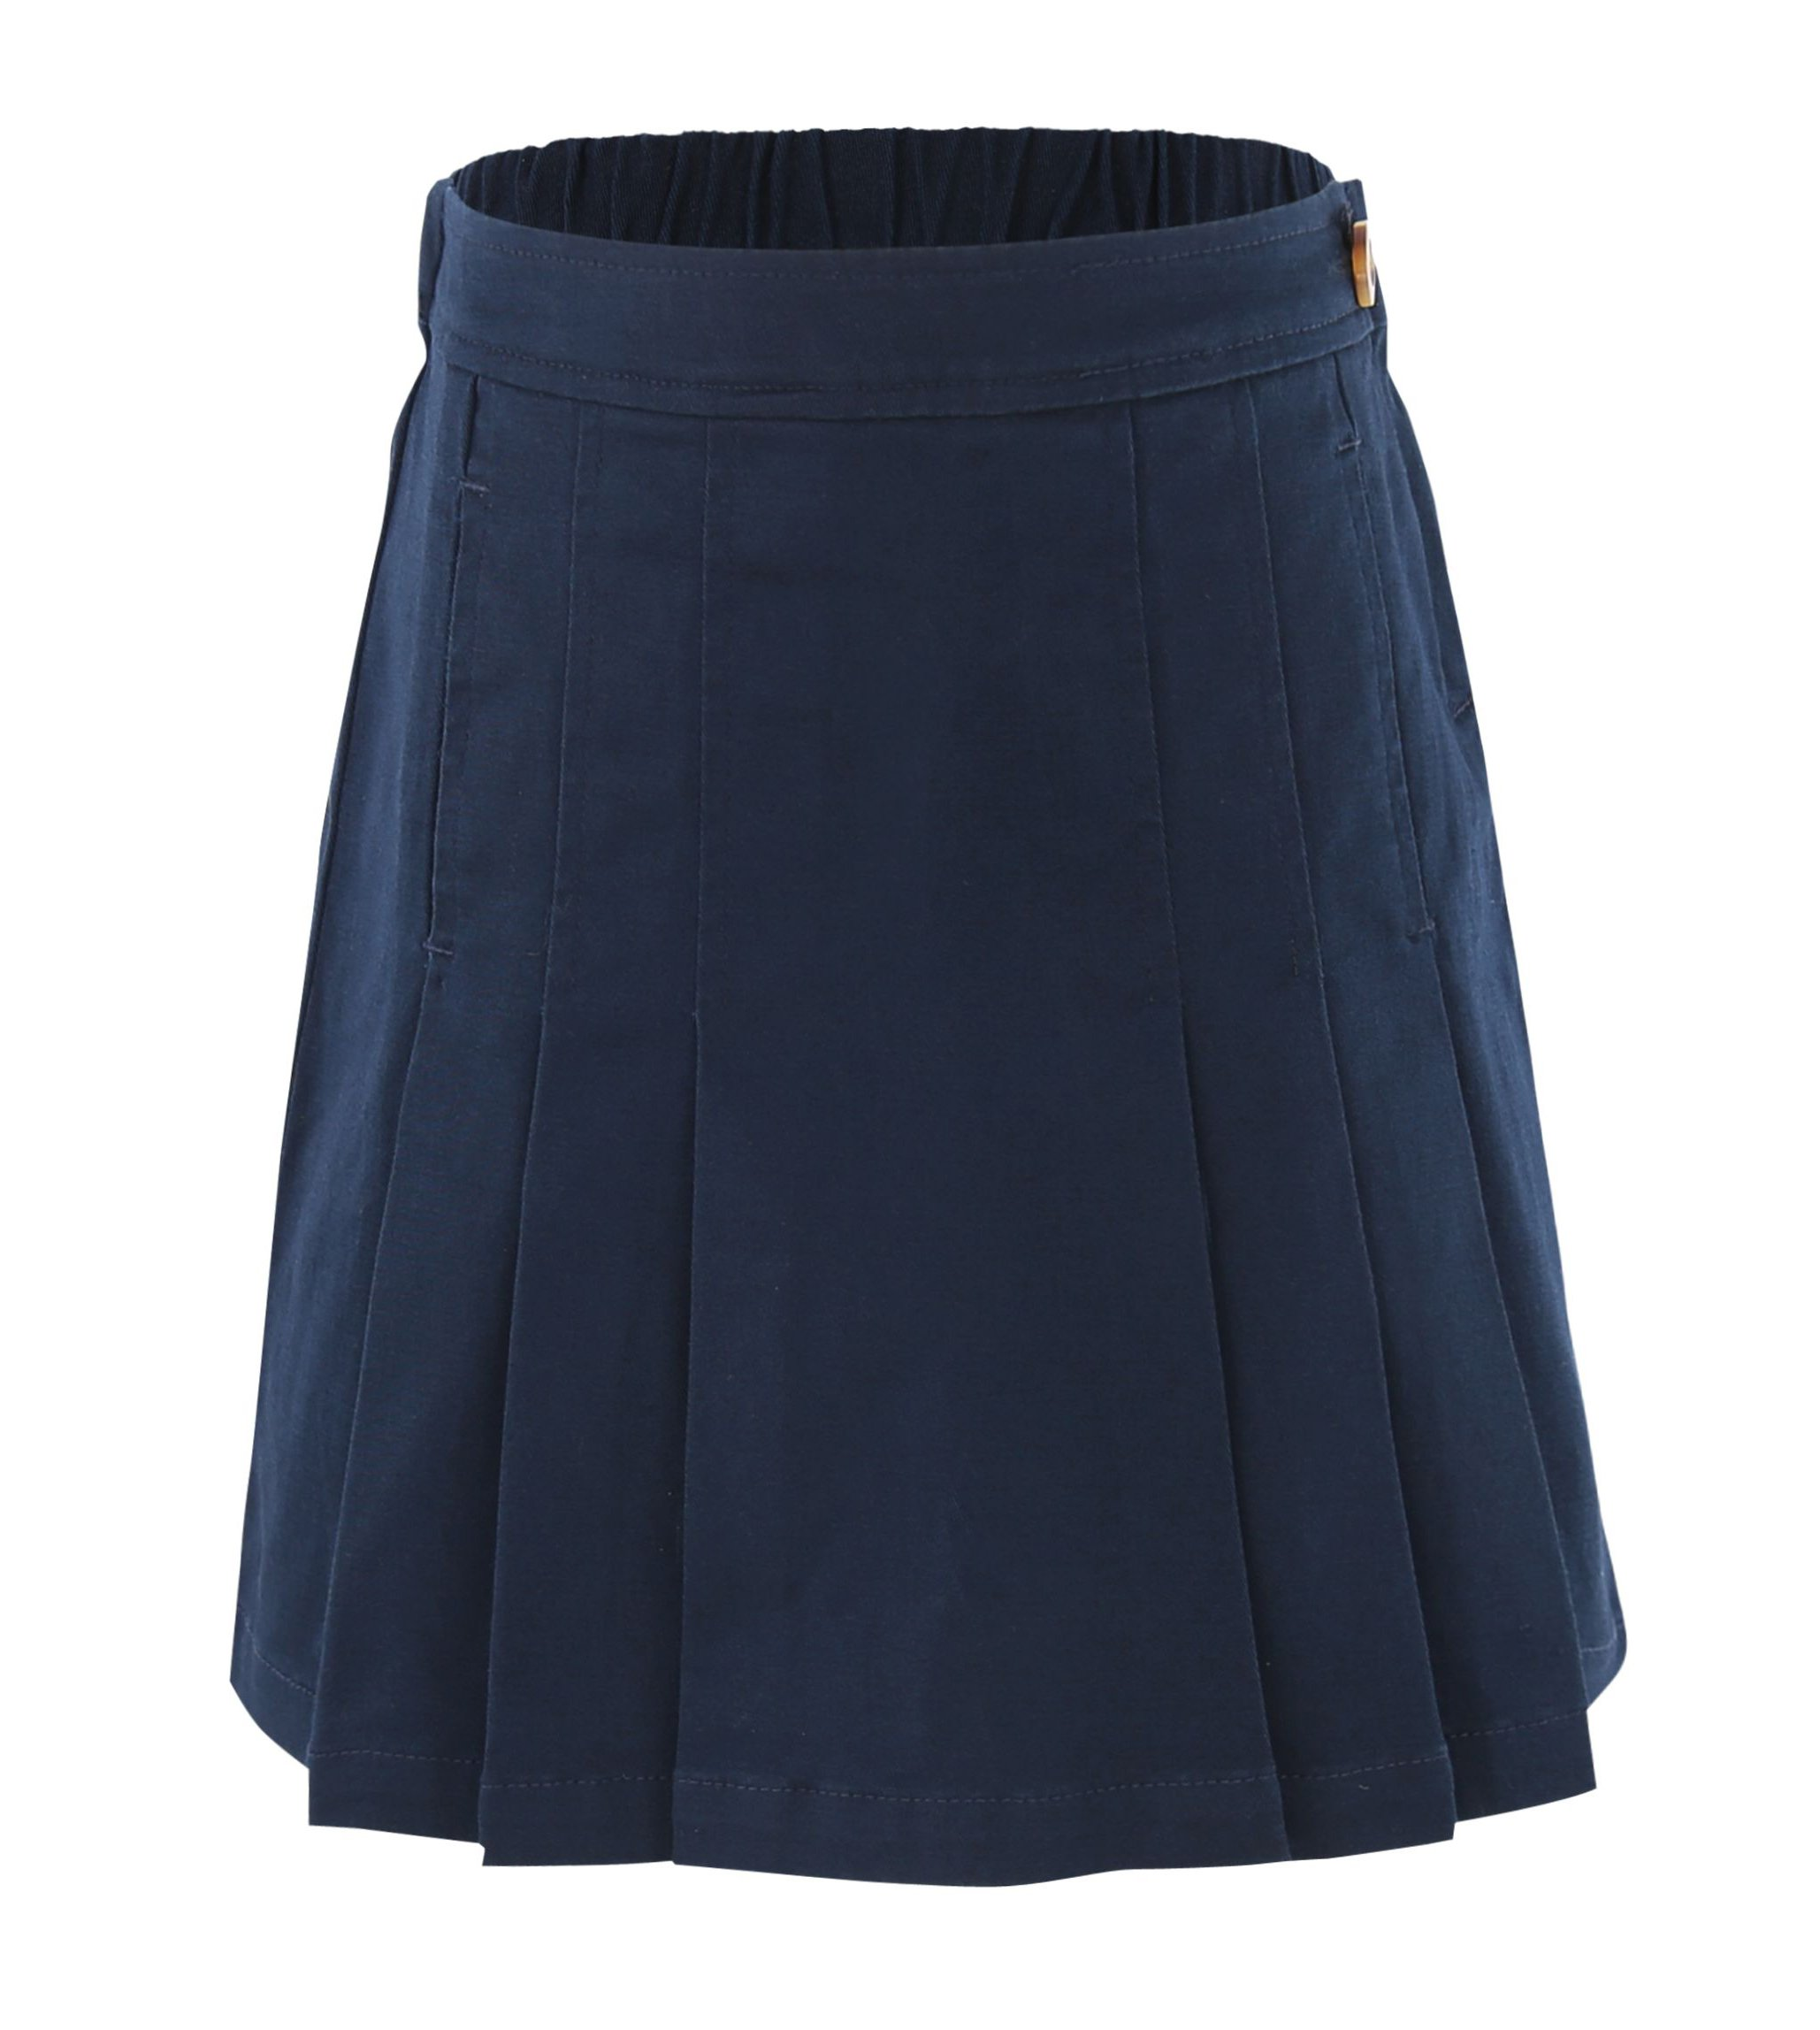 Bienzoe Girl's Cotton Stretchy Twill School Uniforms Pocket Pleated Skirt Navy Size 12